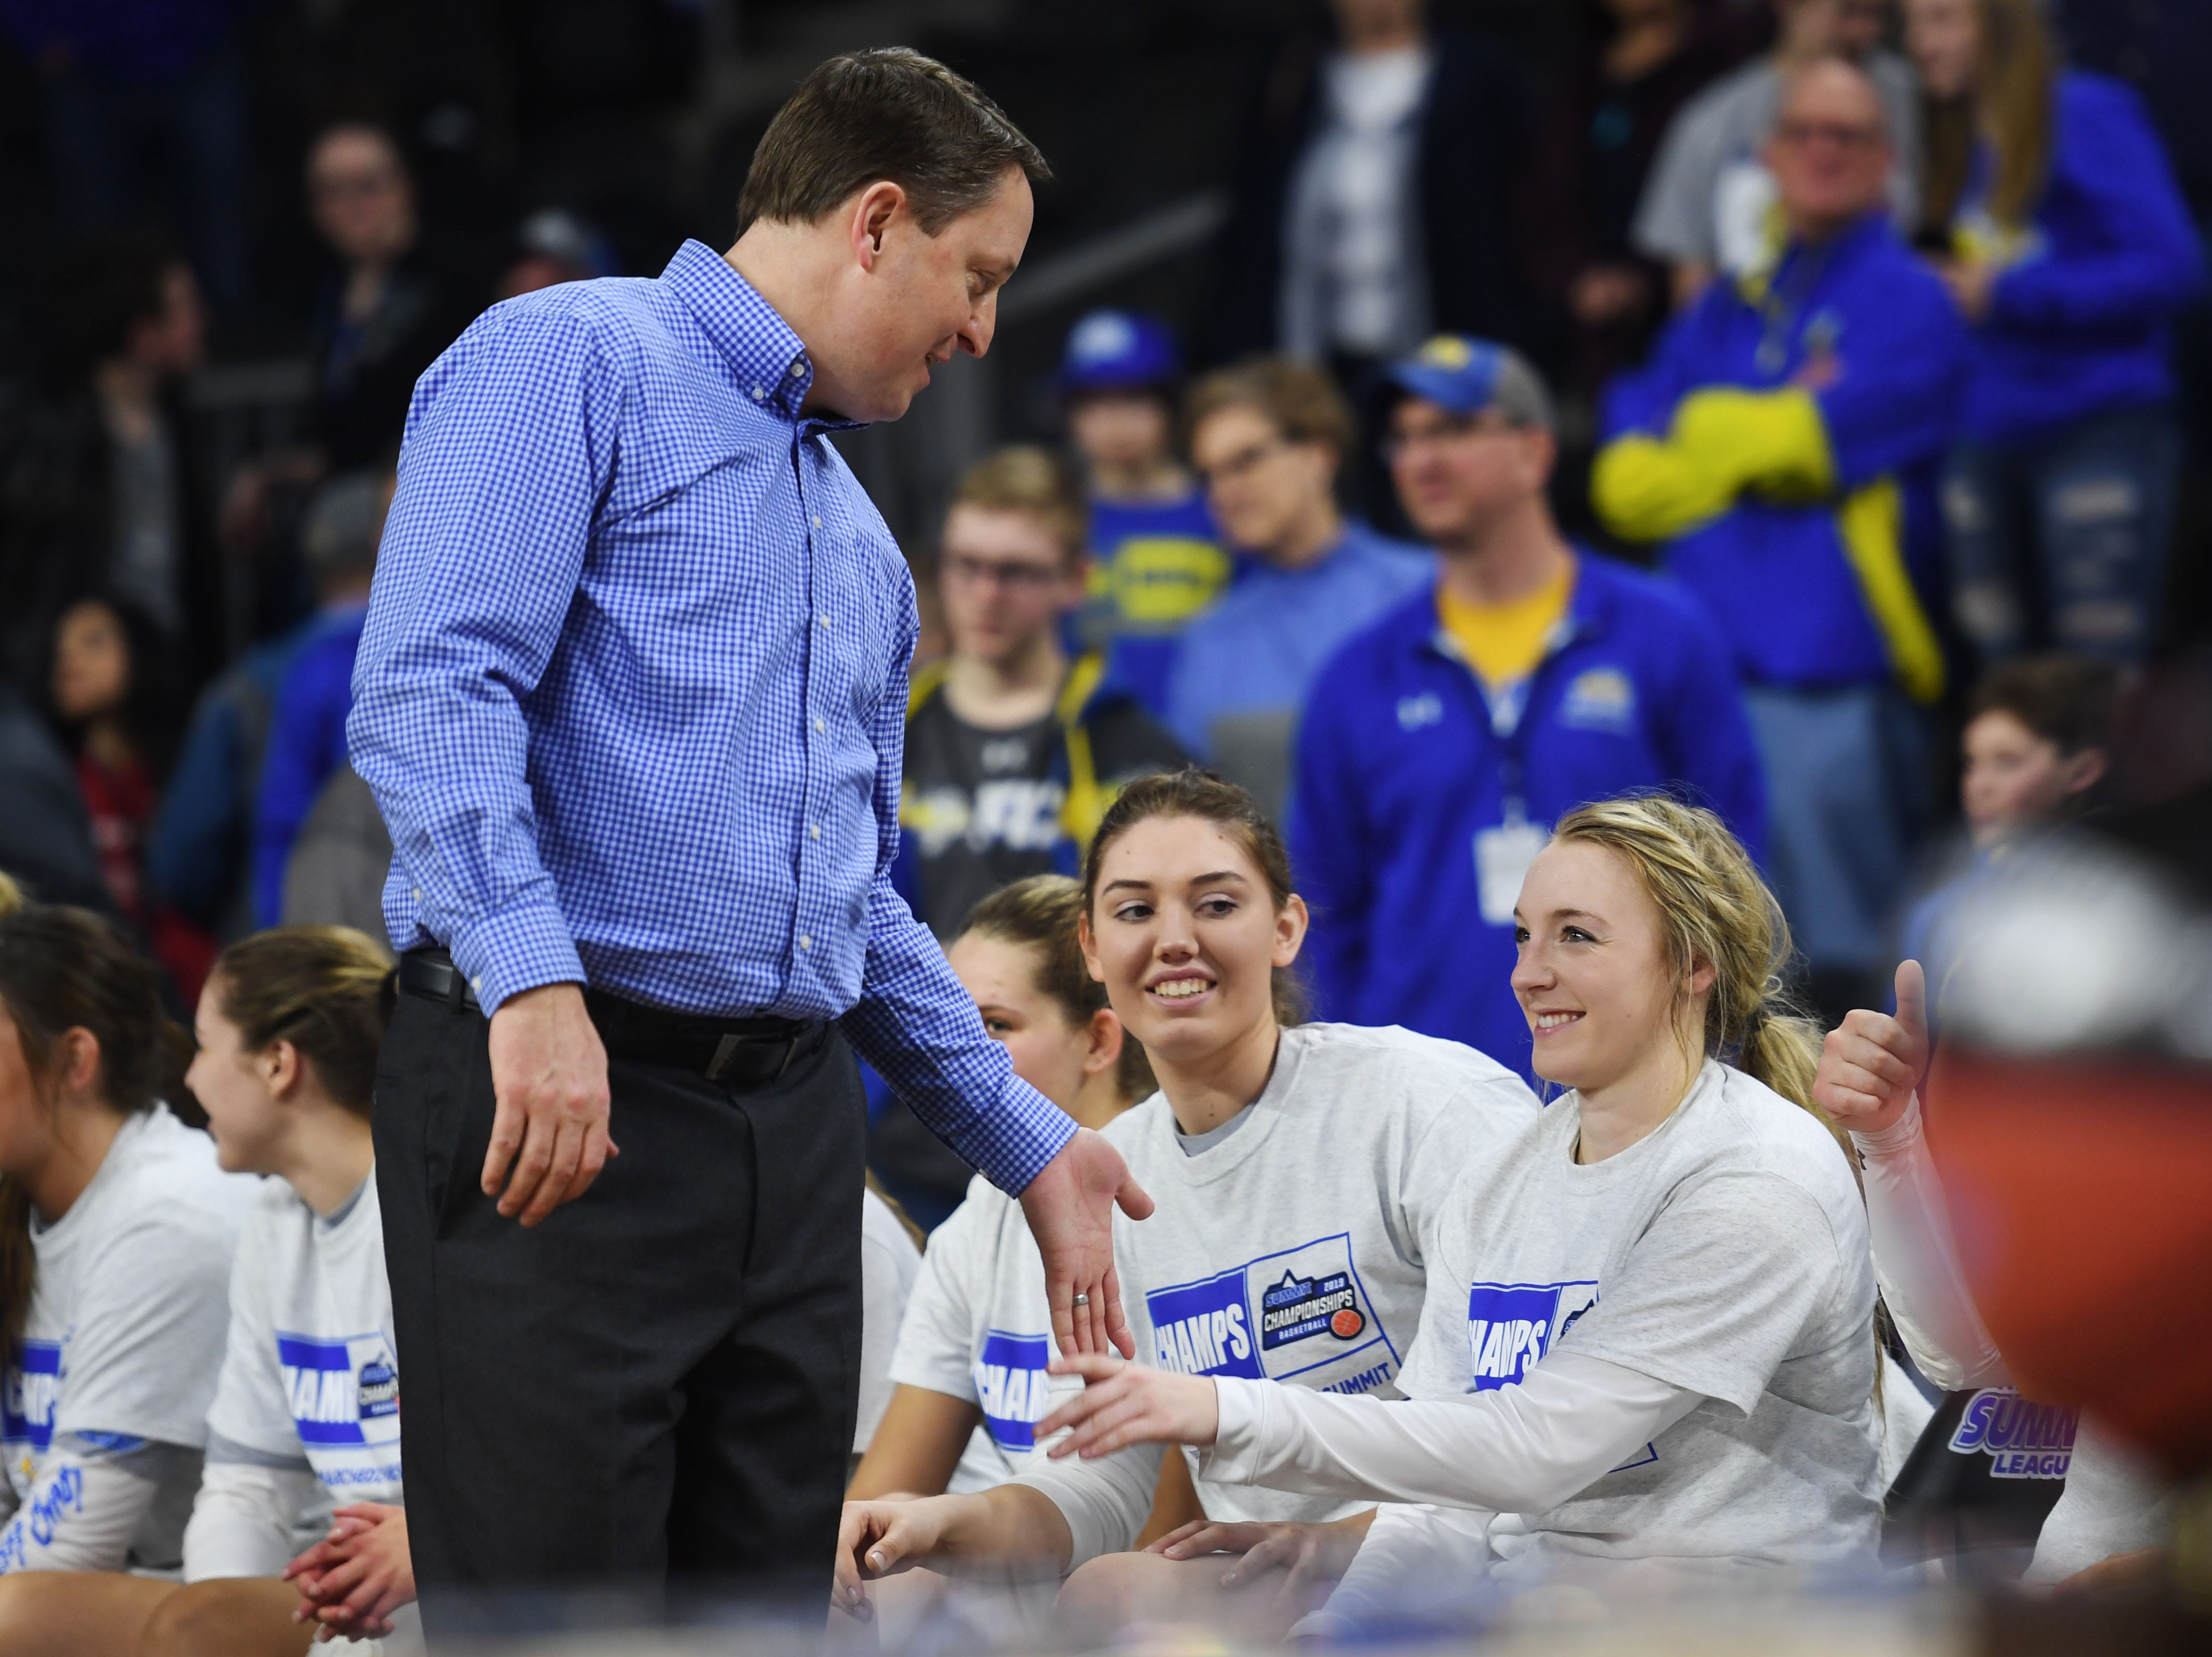 SDSU's head coach Aaron Johnston high fives each player after their win against USD Tuesday, March 12, in the Summit League women's championship at the Denny Sanford Premier Center in Sioux Falls.